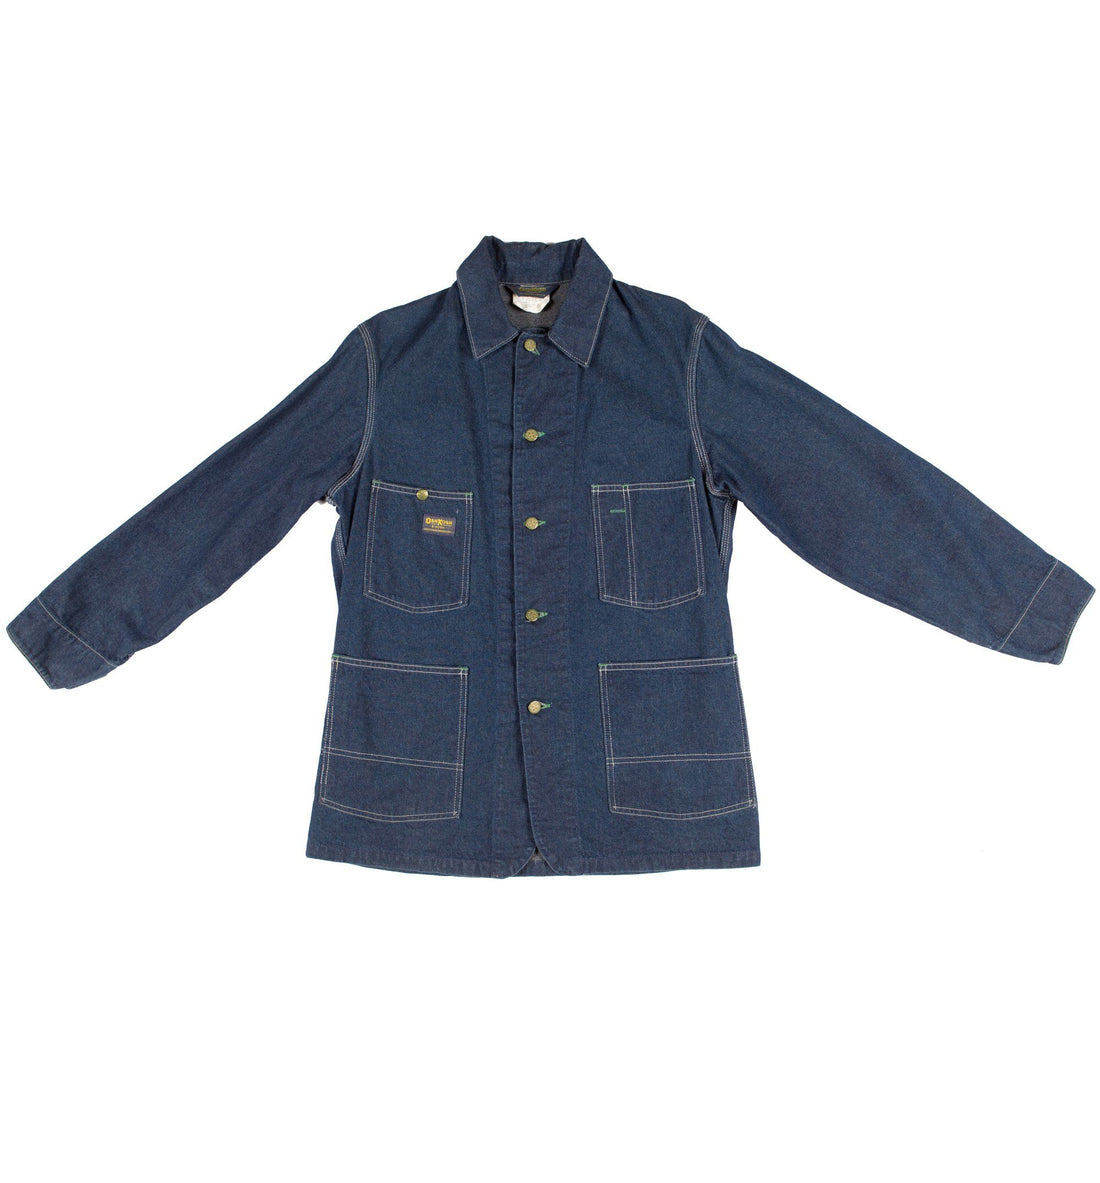 40's Osh Kosh Chore Barn Indigo Denim Jacket - Vintage - Iron and Resin